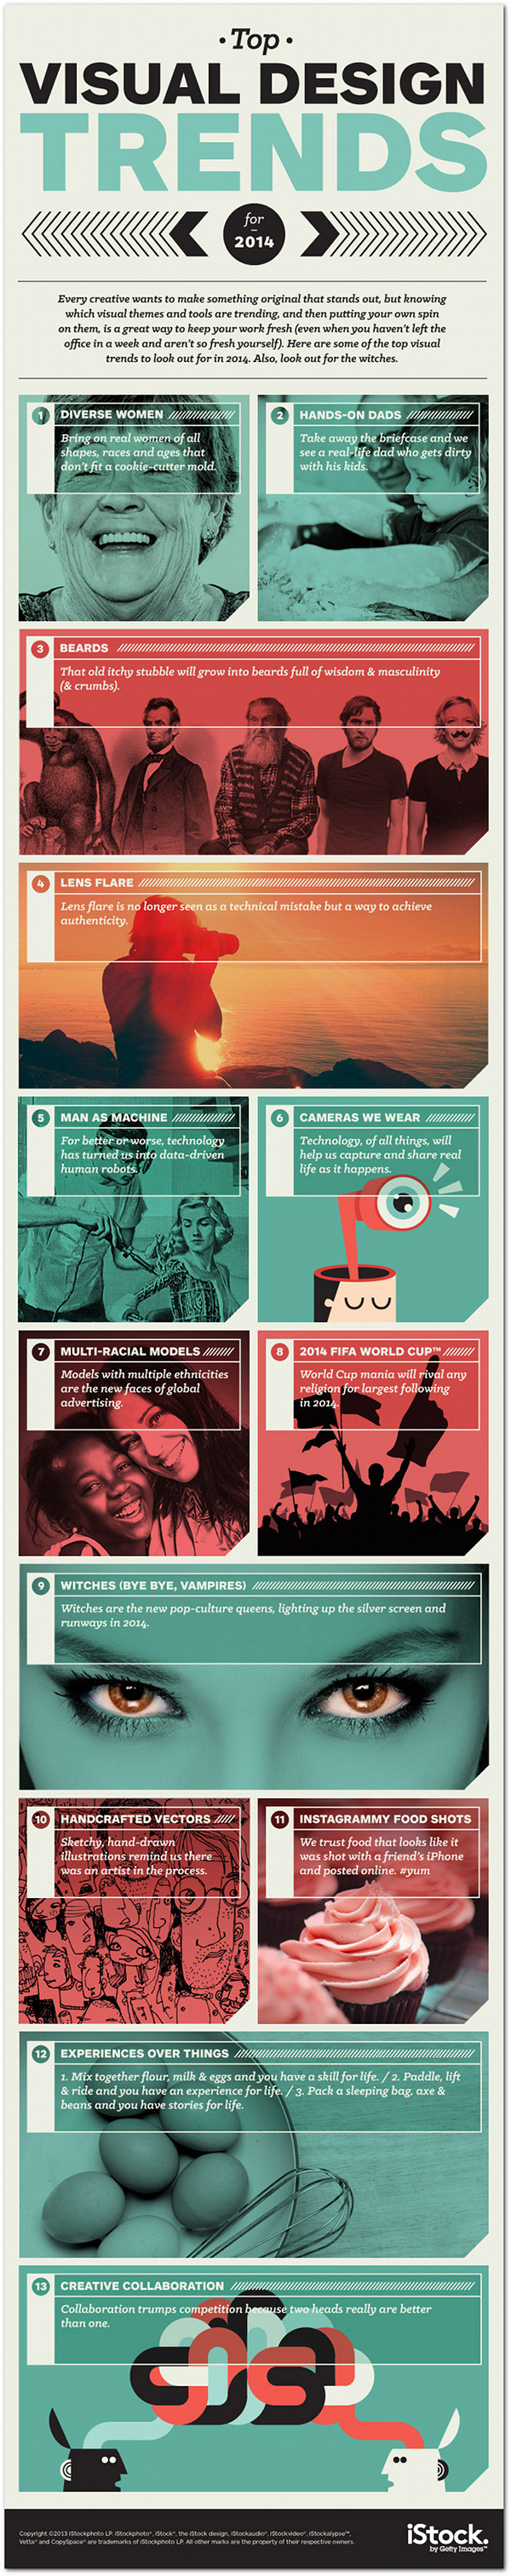 1387321783-top-visual-trends-2014-infographic